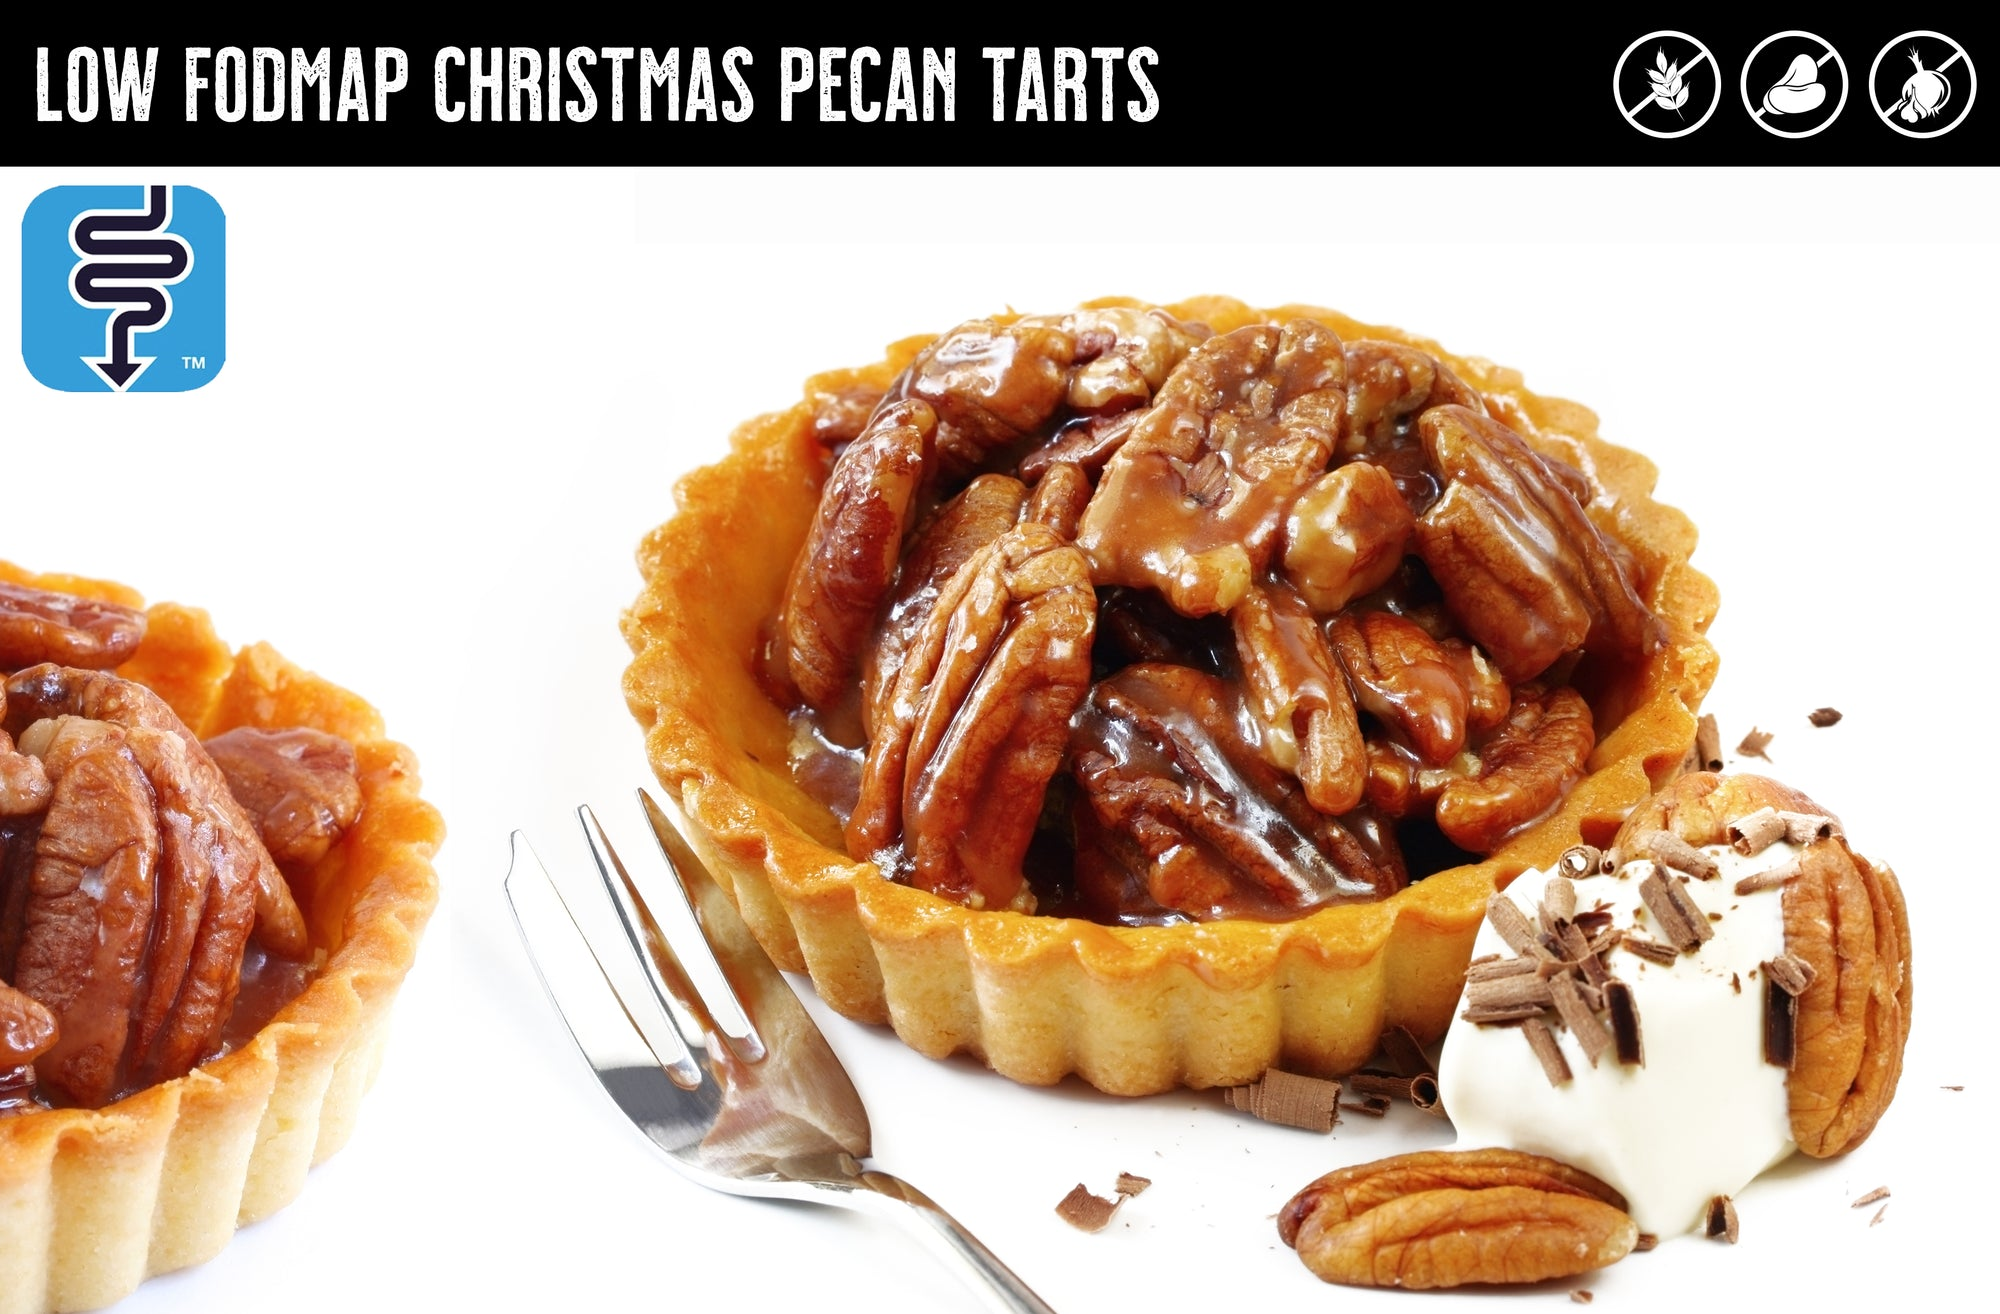 MONASH UNIVERSITY Low FODMAP Christmas Pecan Tarts